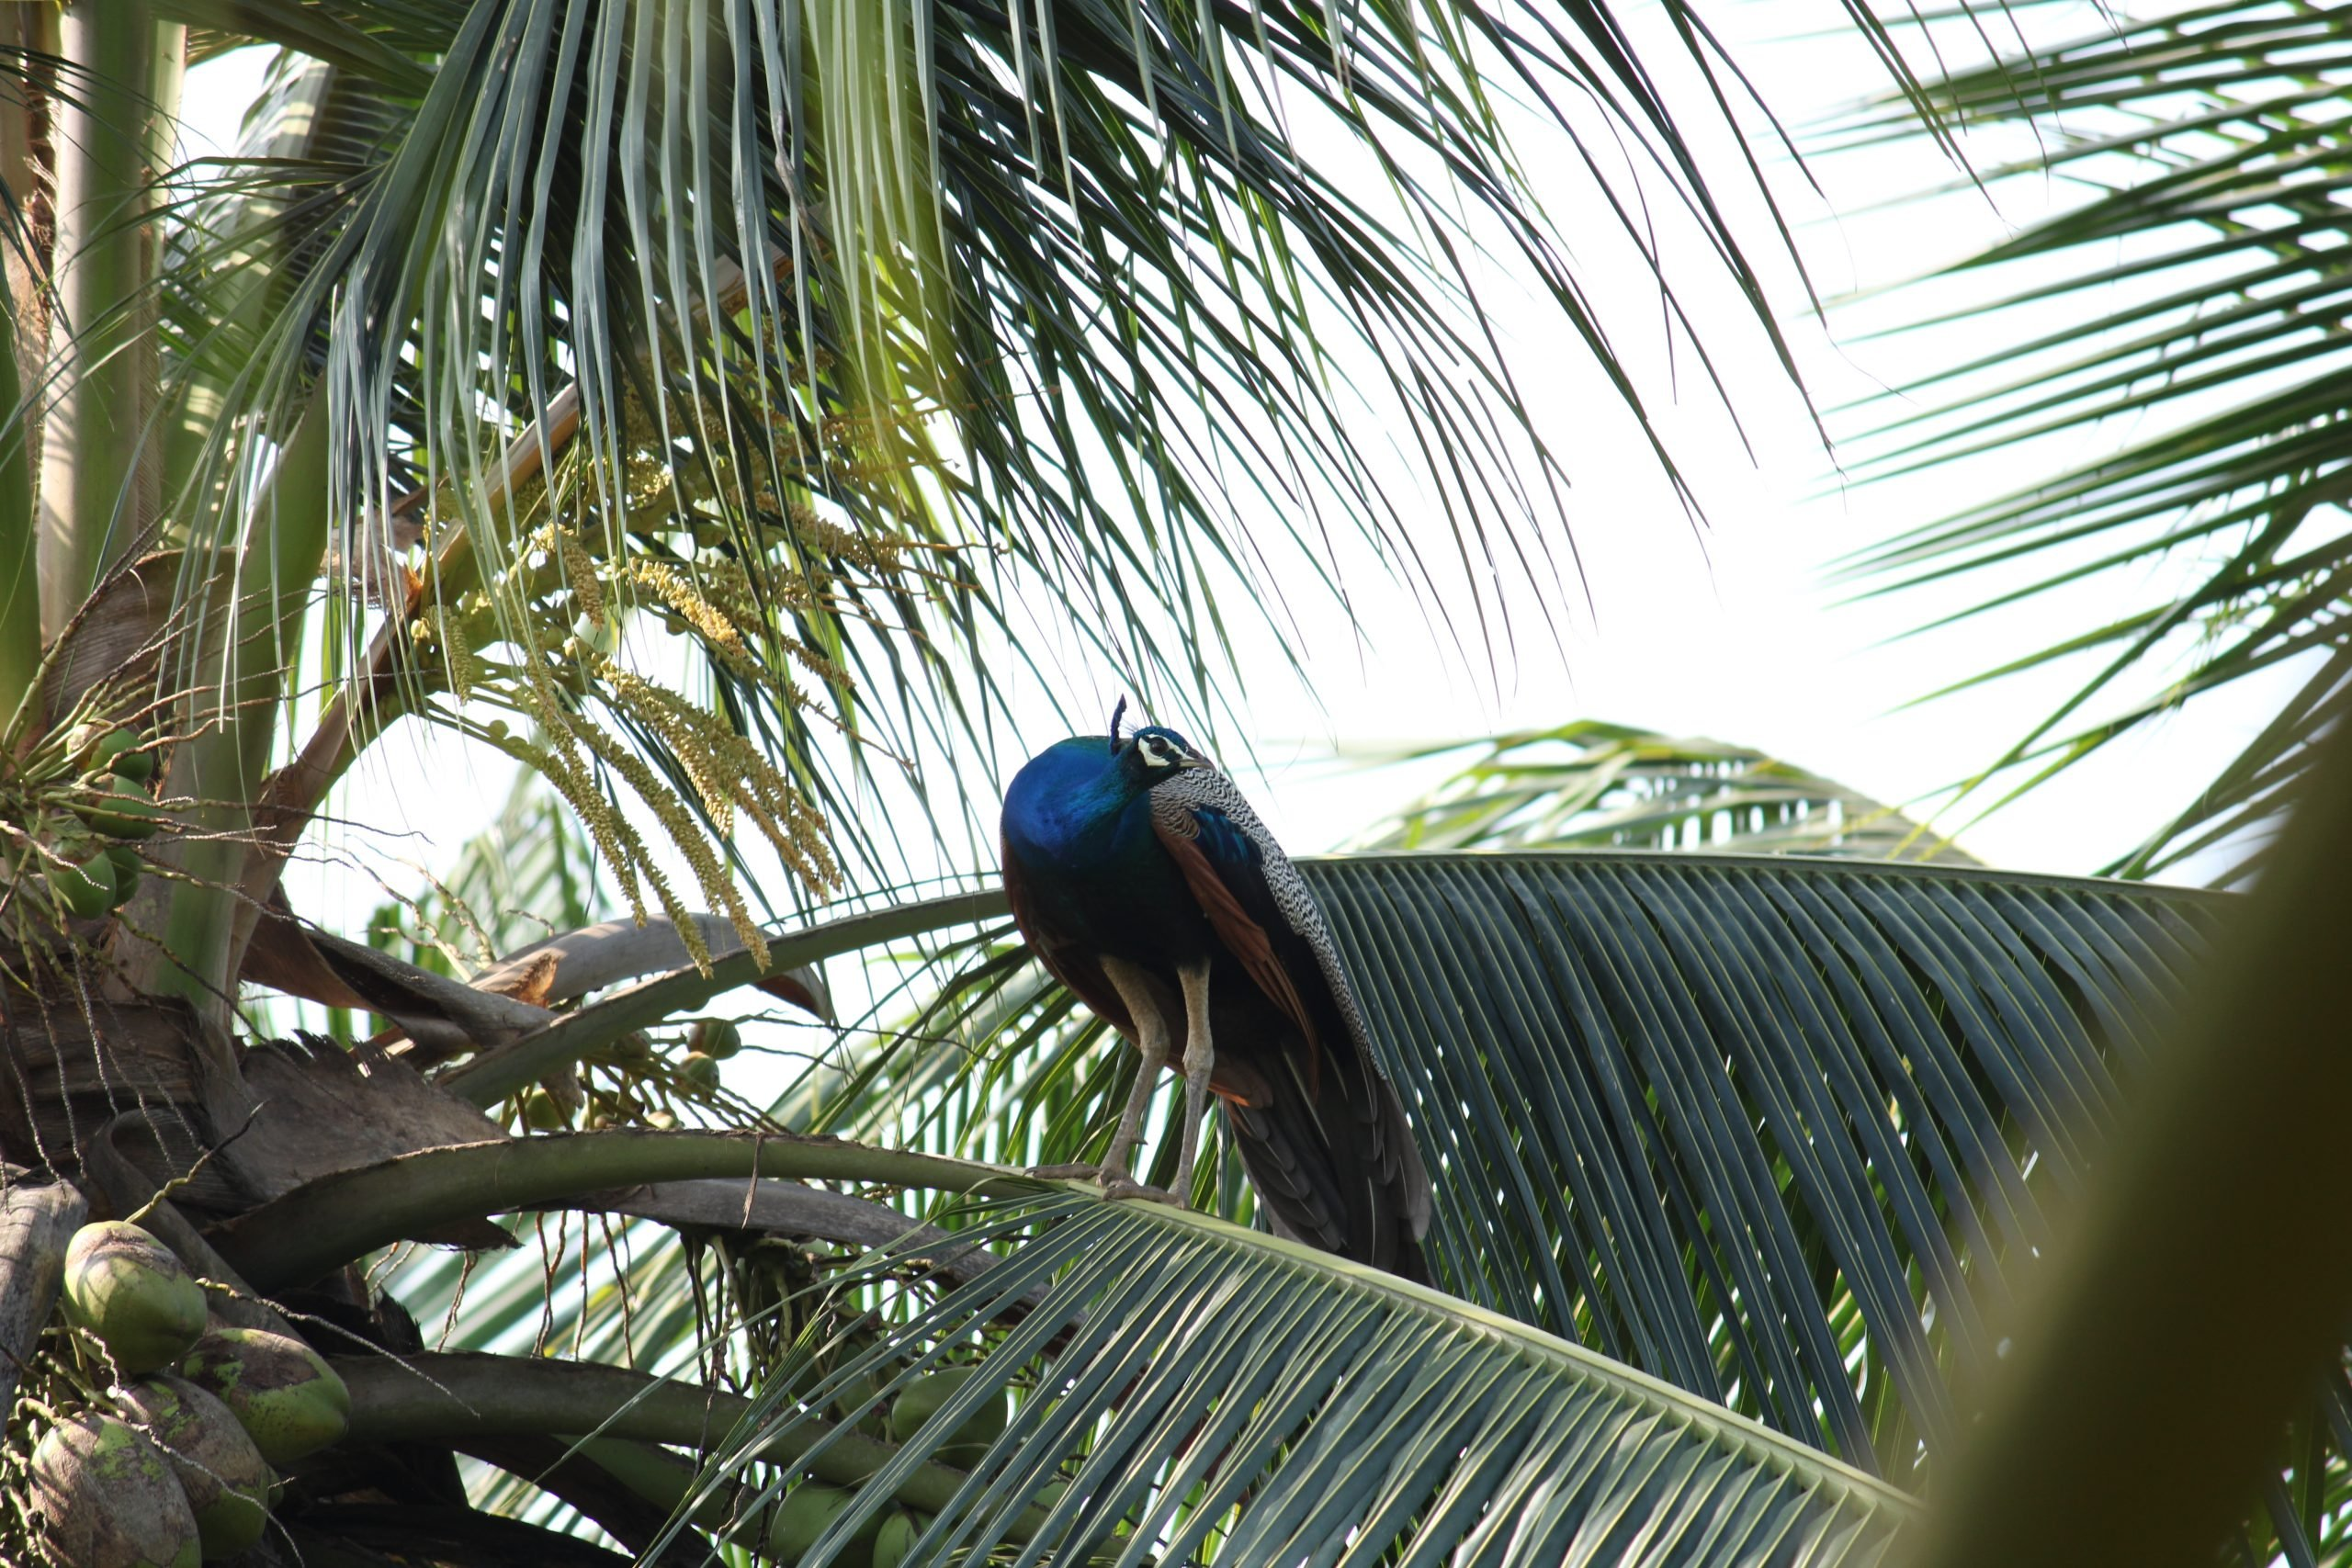 A peacock sitting on a tree